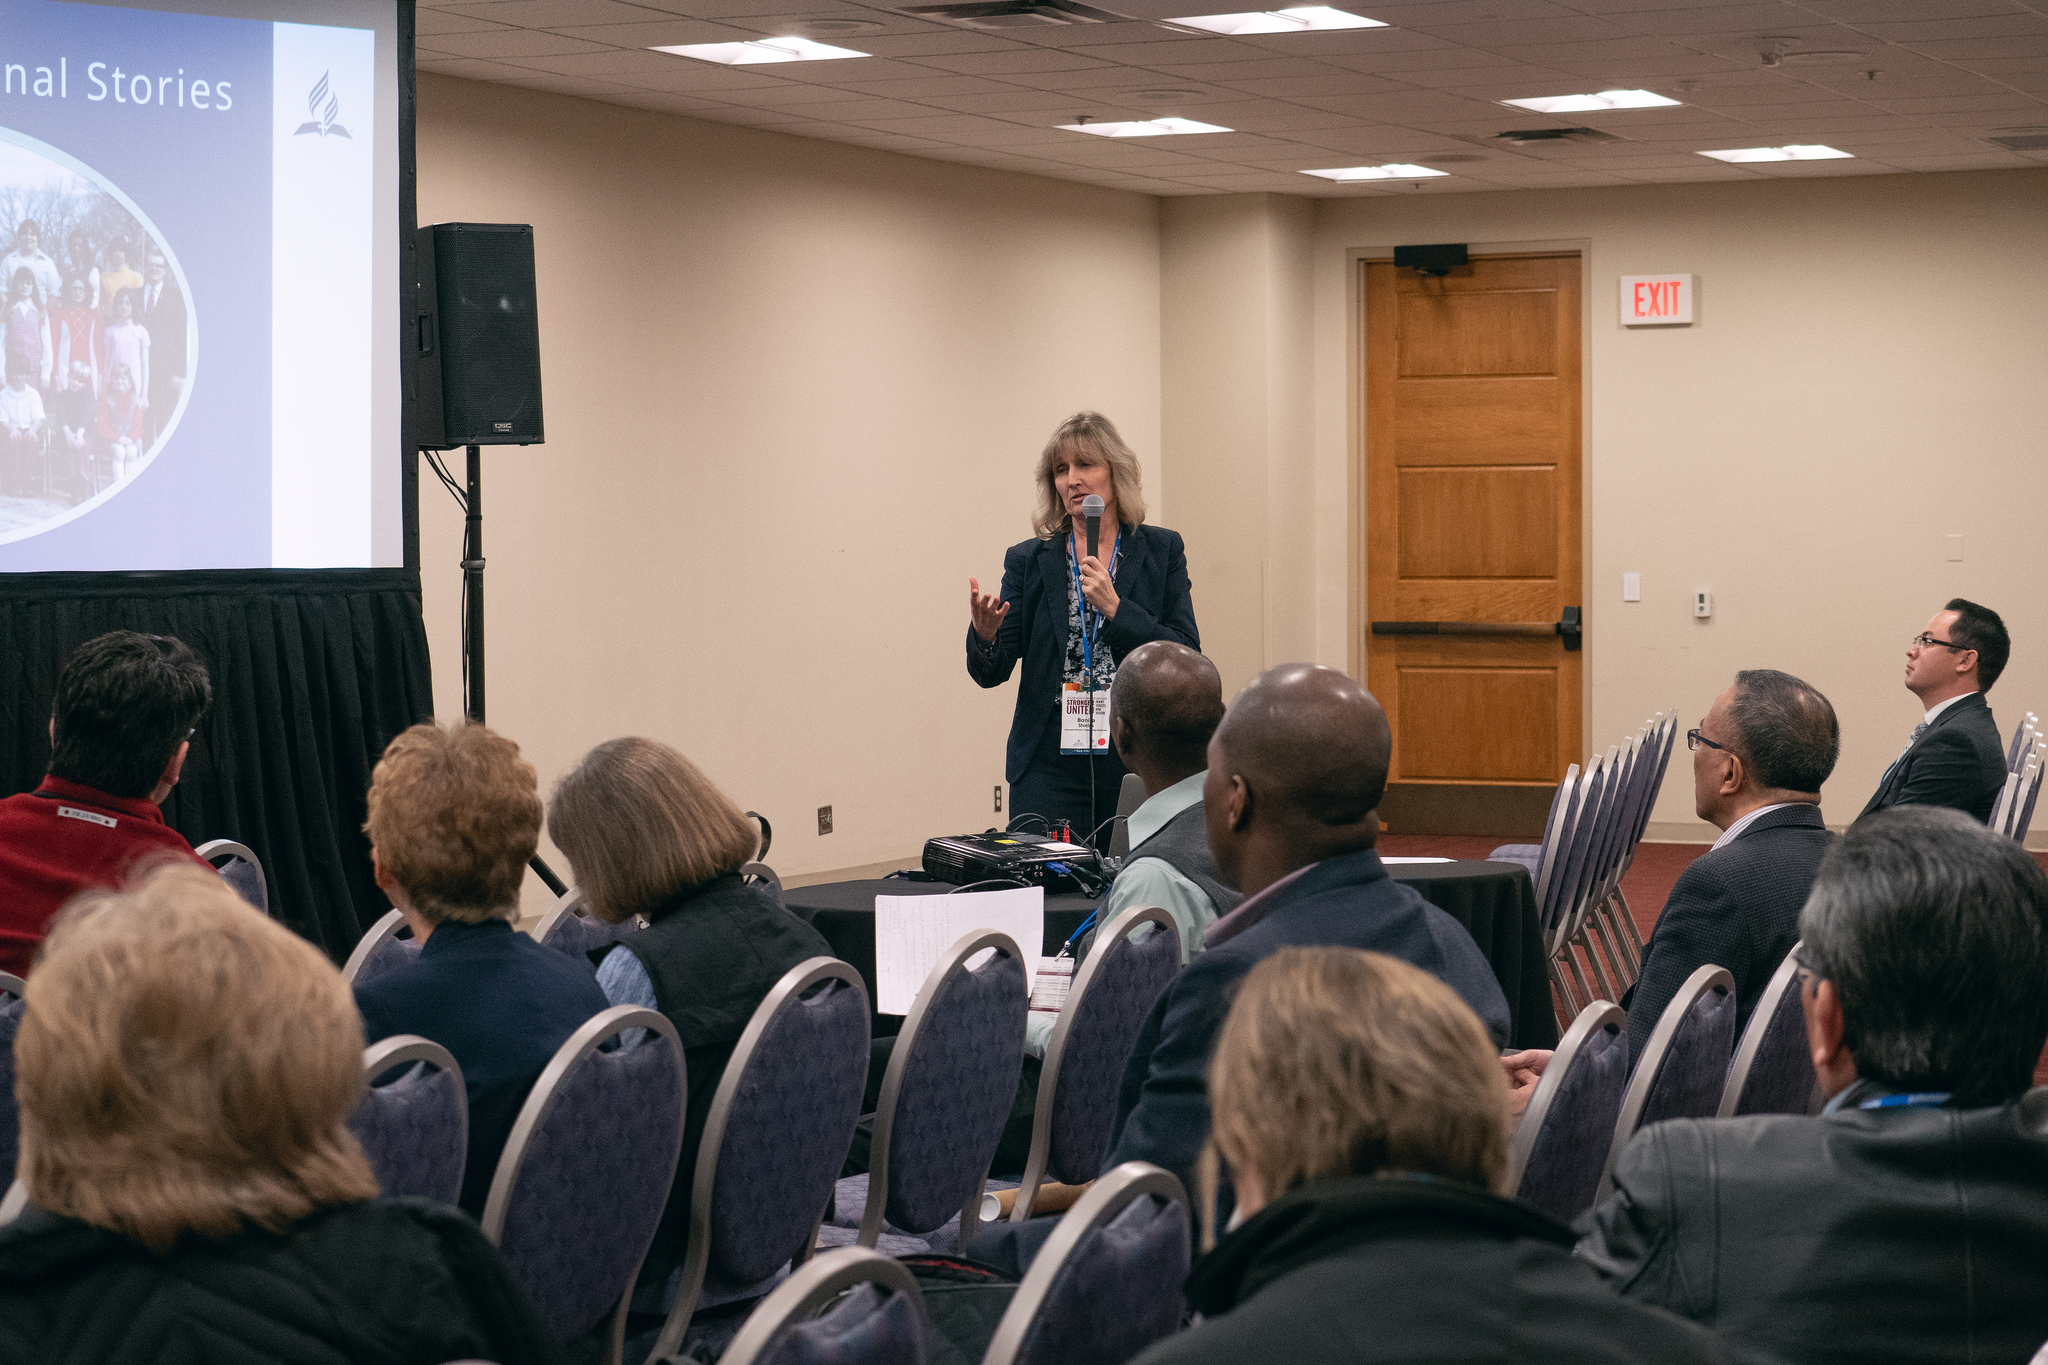 Bonita Joyner Shields, new NAD Stewardship director, presents a breakout session on stewardship during the 2019 Adventist Ministries Convention. Photo by Pieter Damsteegt